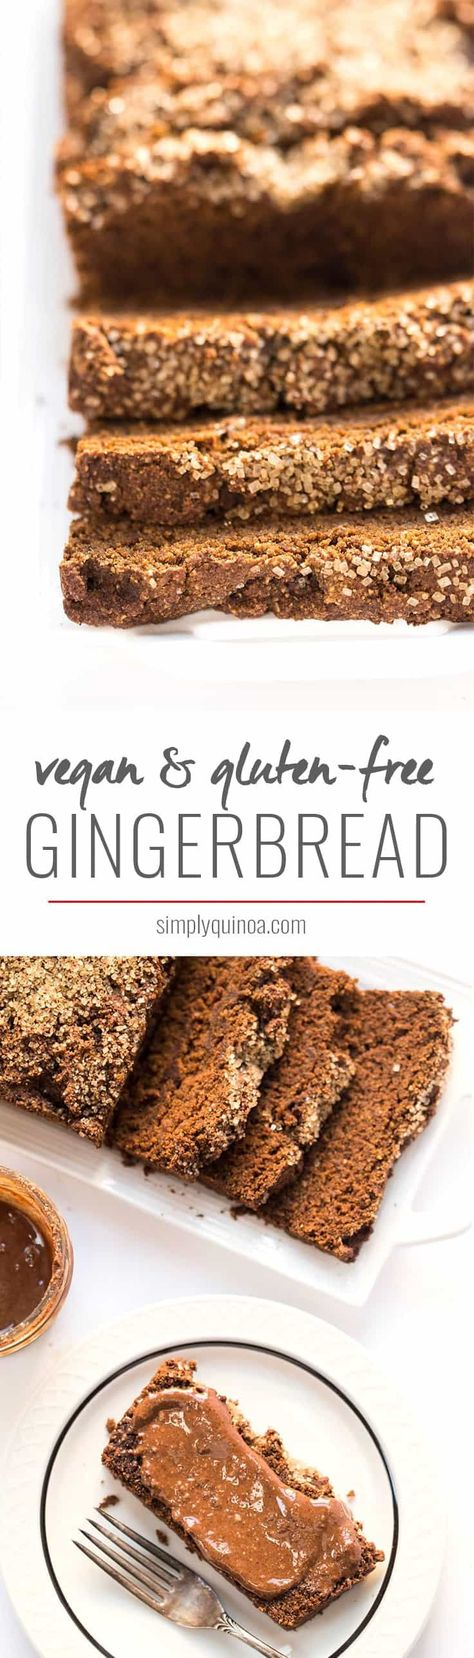 This Vegan Gingerbread Loaf is a nutritious version of this holiday treat, made without any dairy, eggs, gluten or oil. Perfect for breakfast or a snack! #vegan #gingerbread #gingerbreadloaf #christmas #christmasbaking #veganchristmas #vegandesserts #recipe #glutenfree #vegangingerbread #glutenfreeloaf #simplyquinoa #nutella